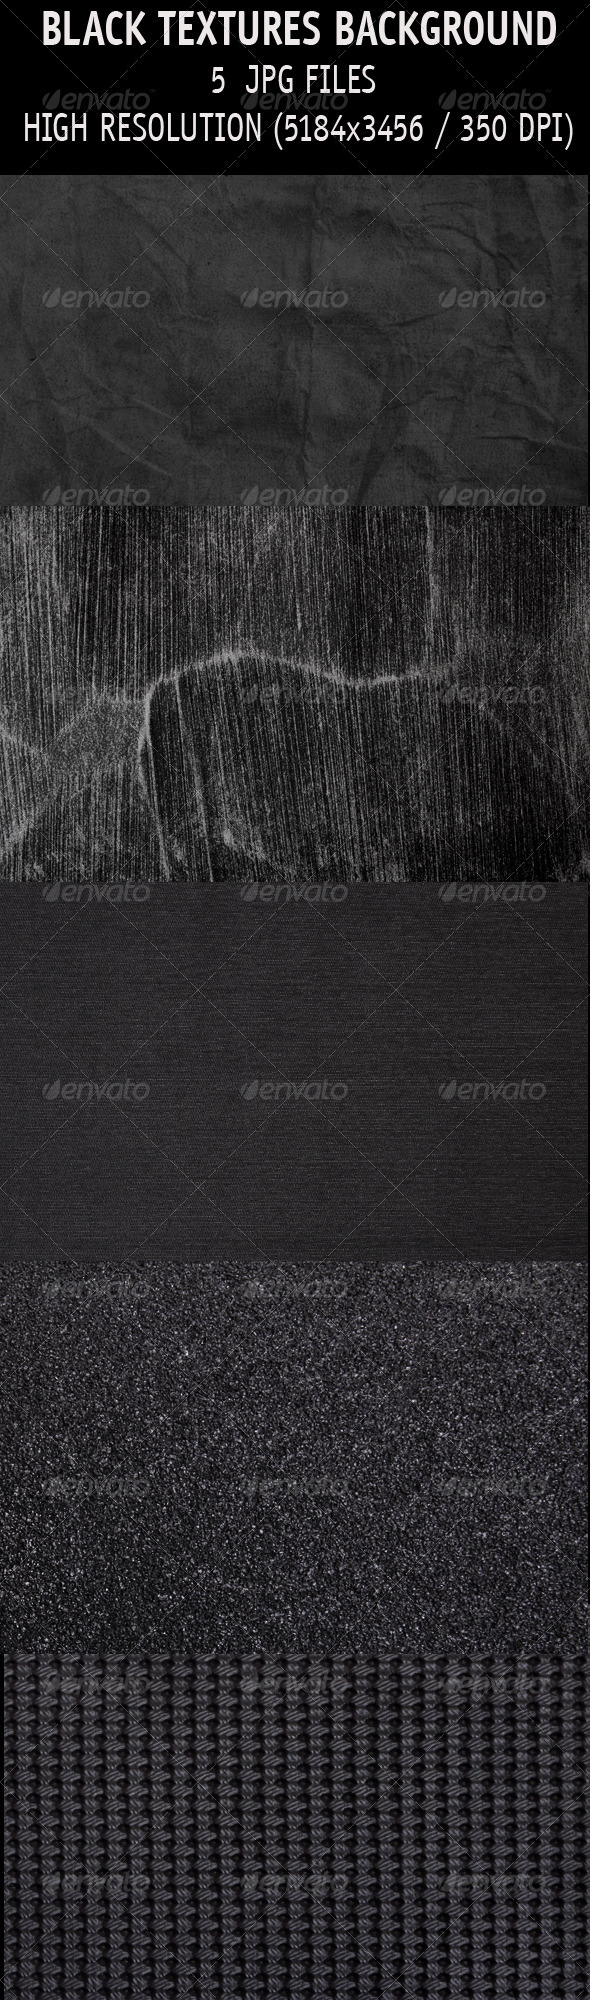 Black textures background - Industrial / Grunge Textures